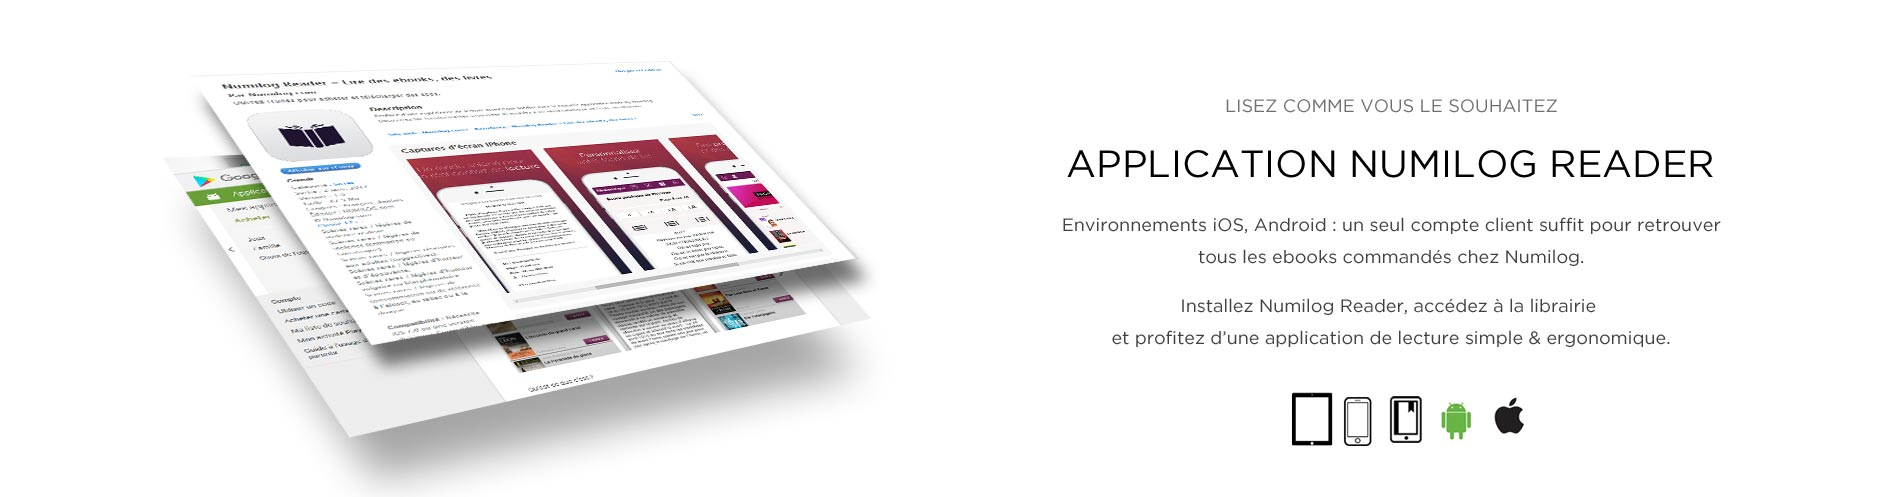 application de lecture ebooks ipad ios android et liseuse